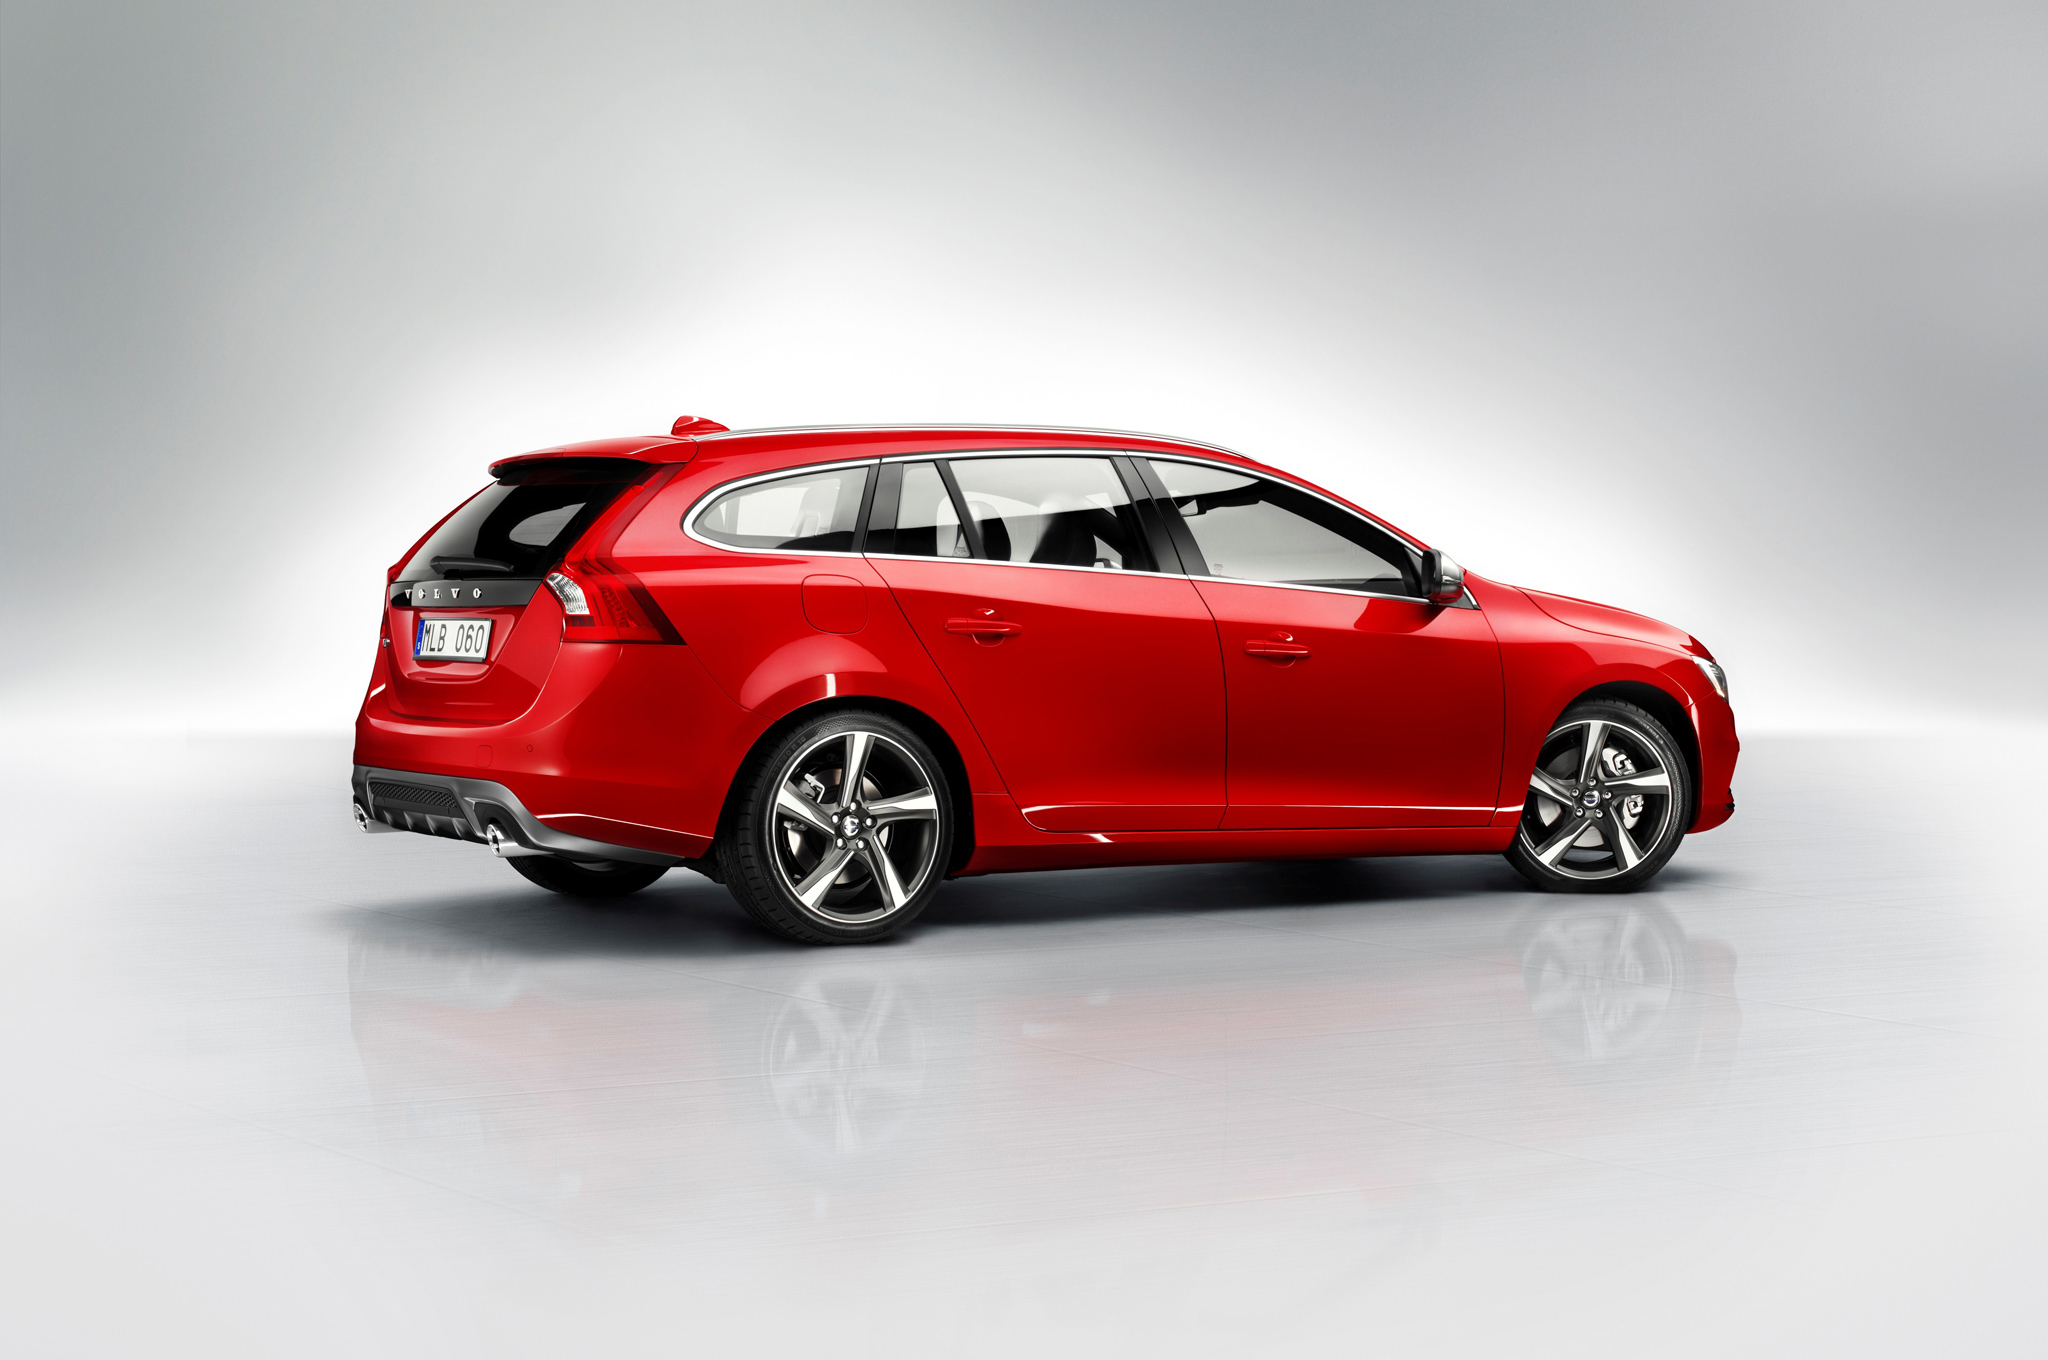 2015 Volvo V60 R Design Will Be Most Powerful Volvo Wagon Ever